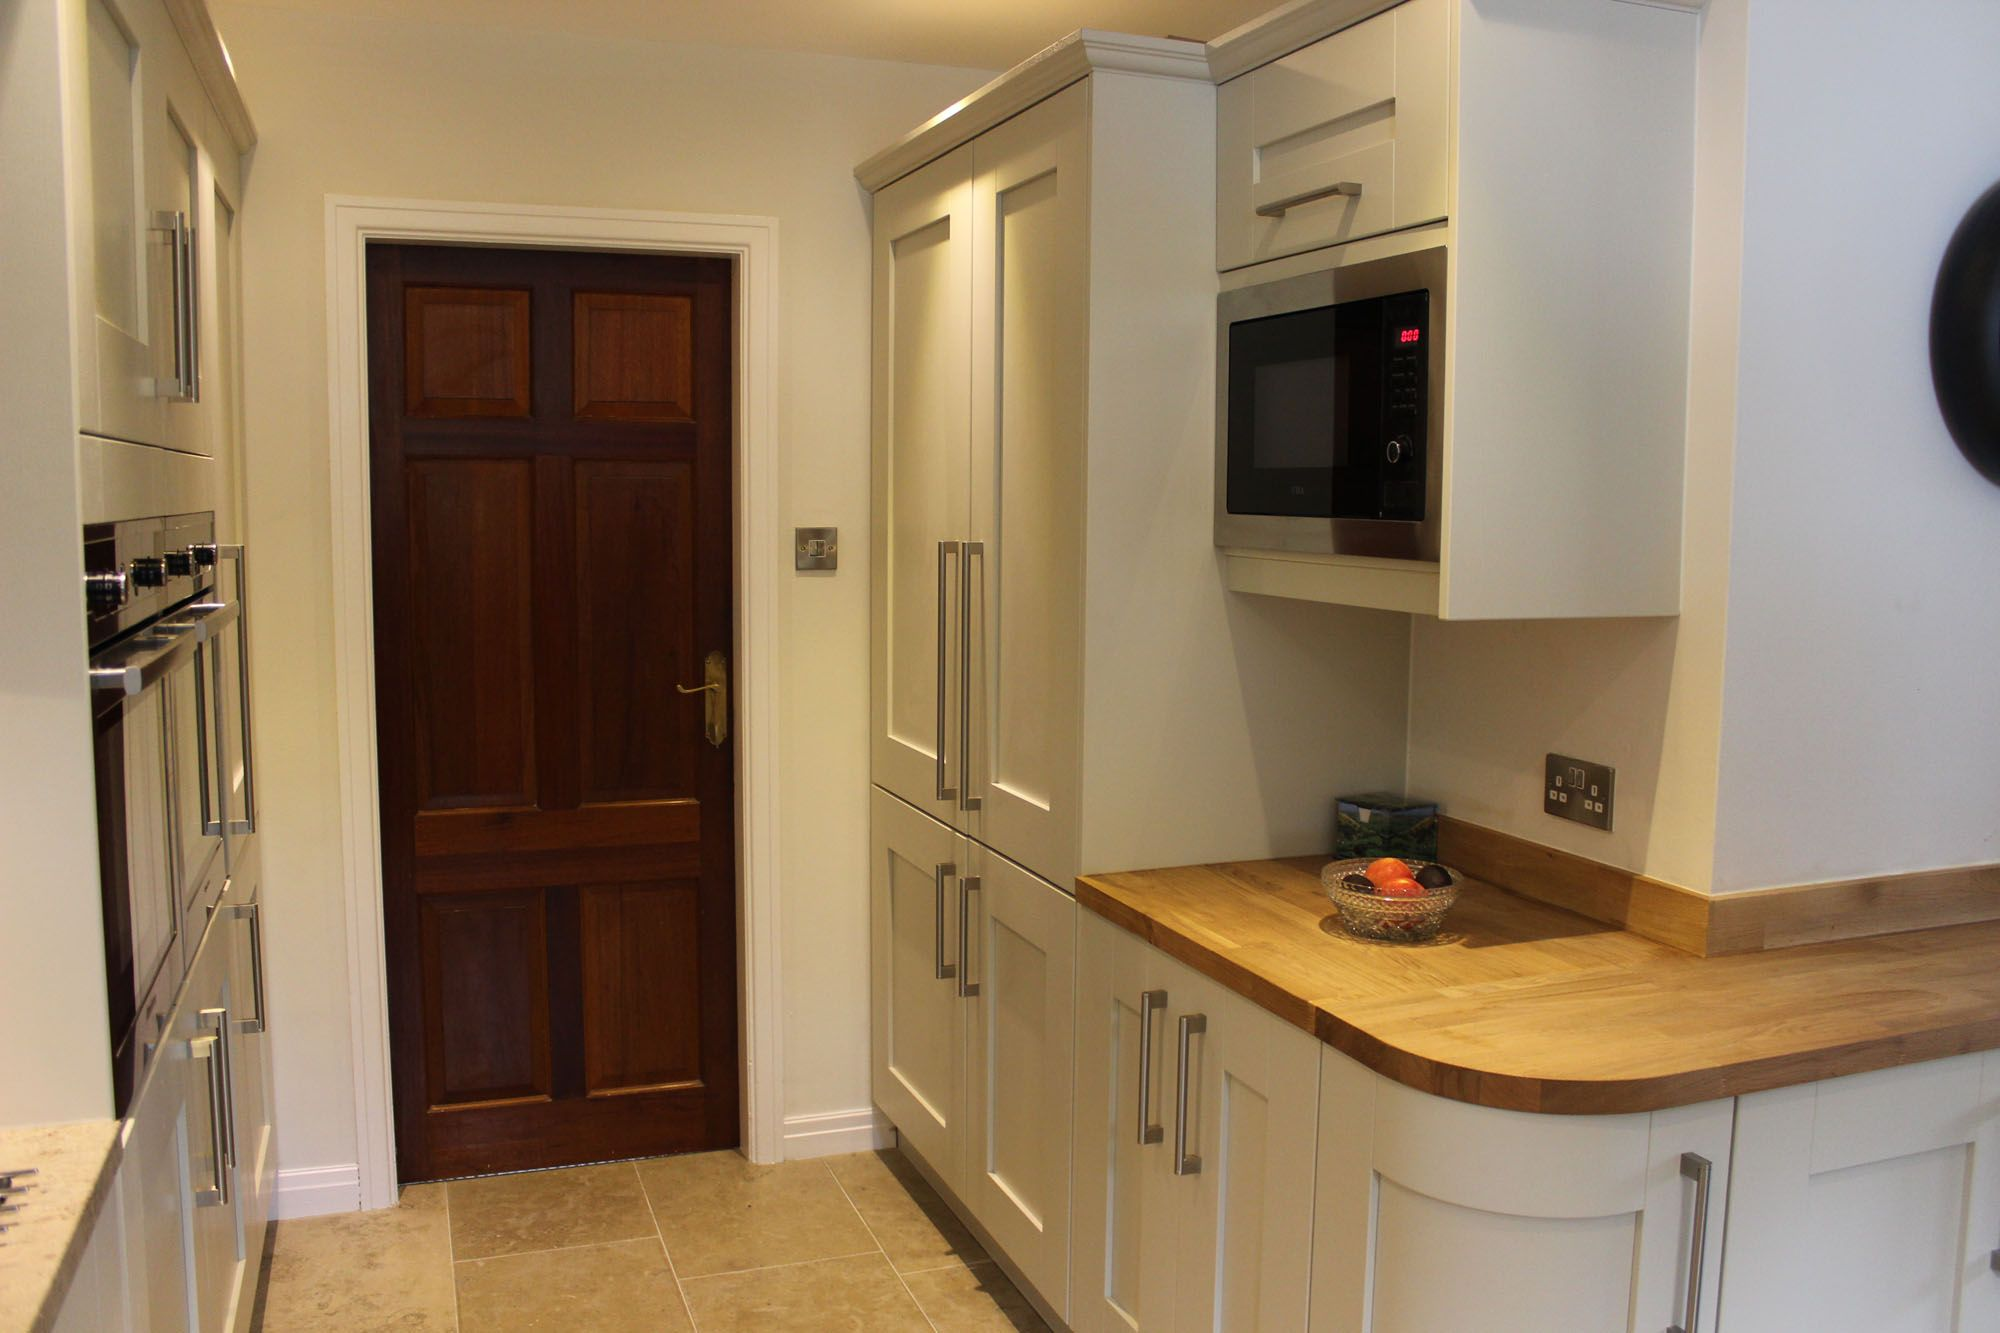 Cheap Kitchens Discount Kitchens for Sale Online Cheap